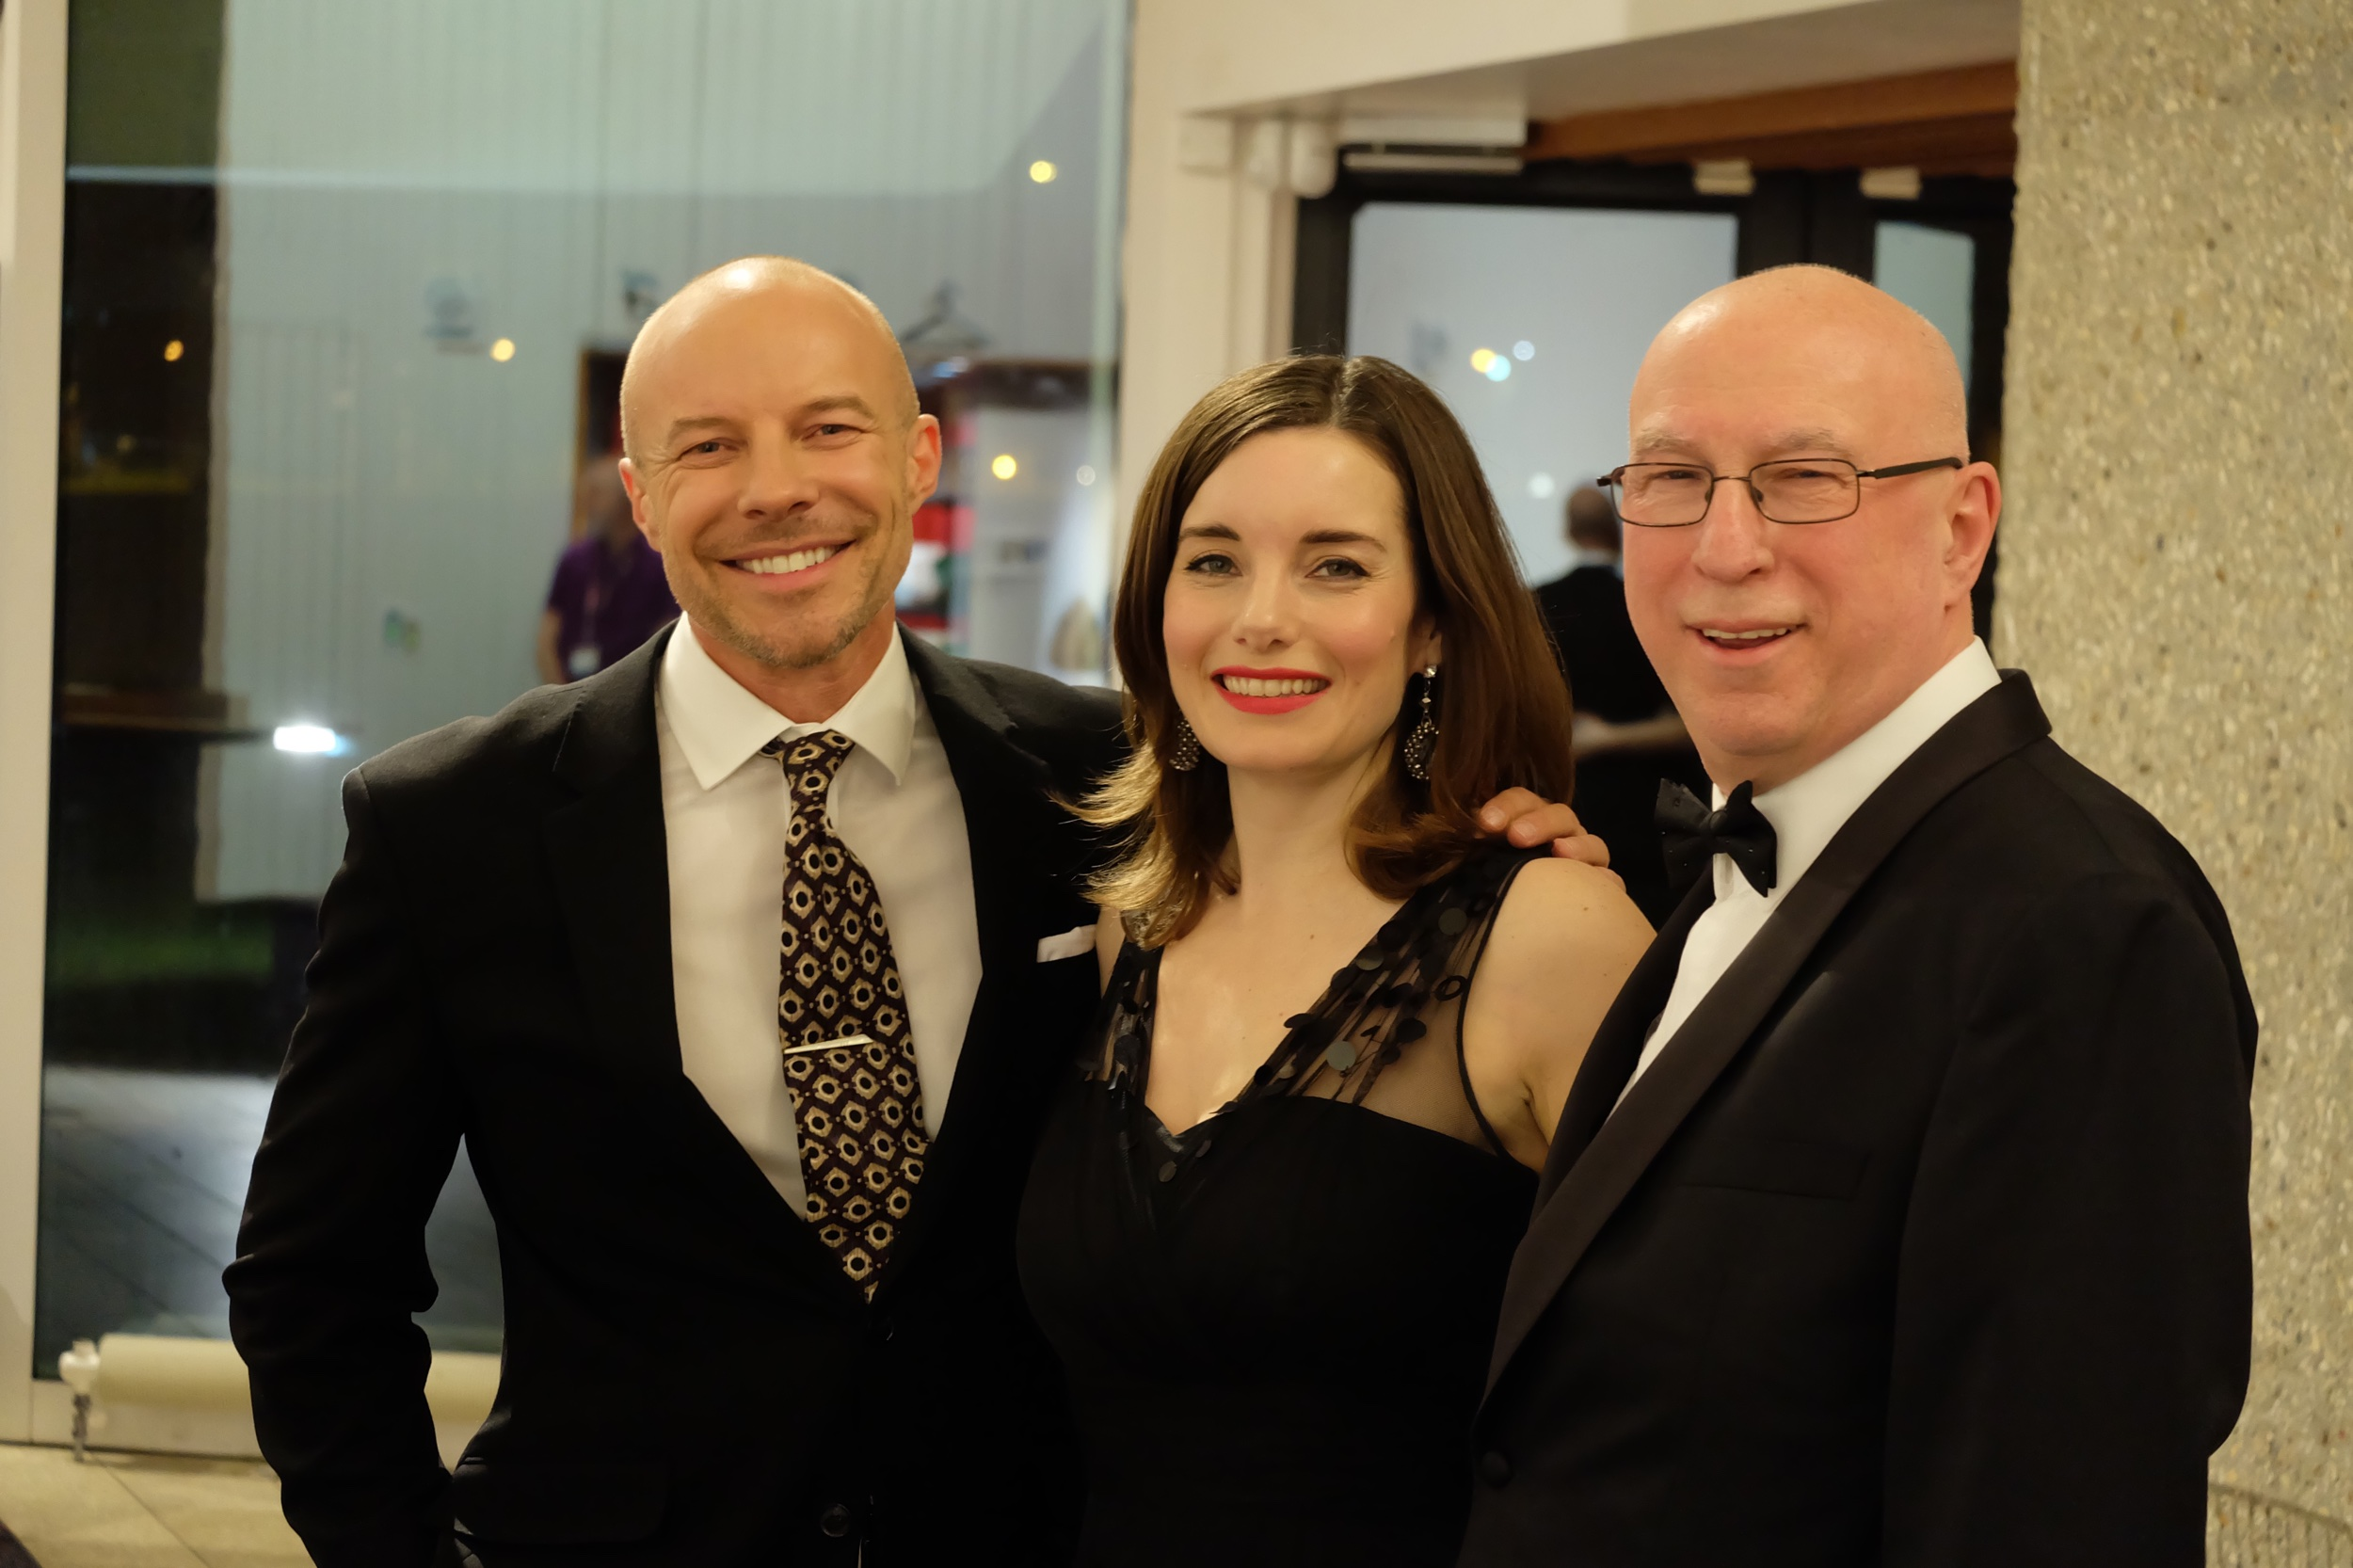 With Ken Bruce and Rebecca Trehearn for Friday Night is Music Night